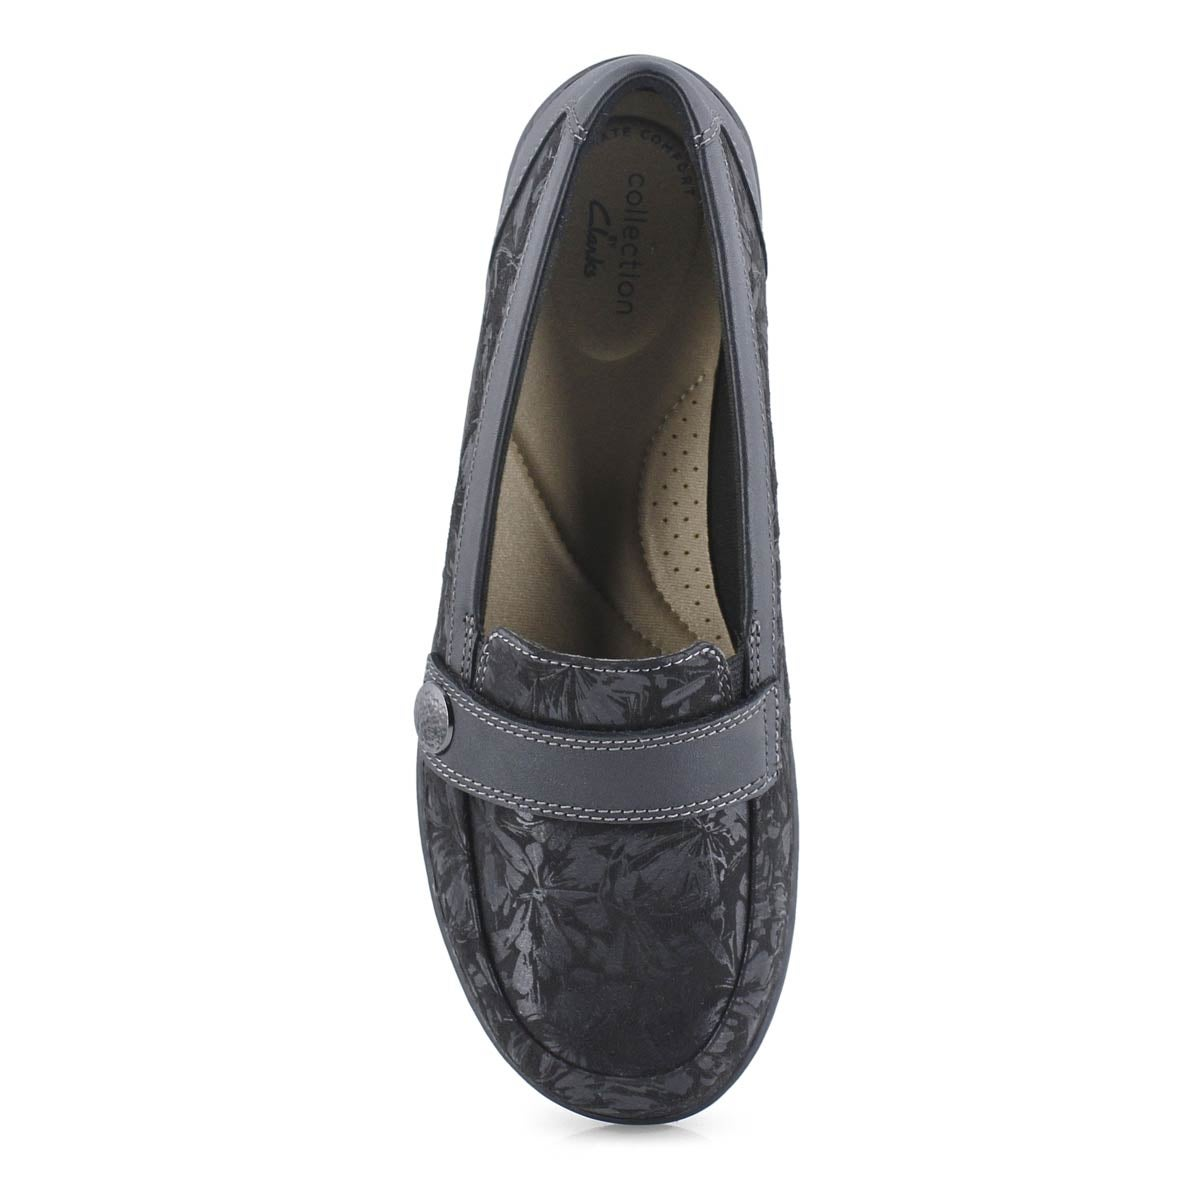 Lds Cora Daisy black casual loafer-wide